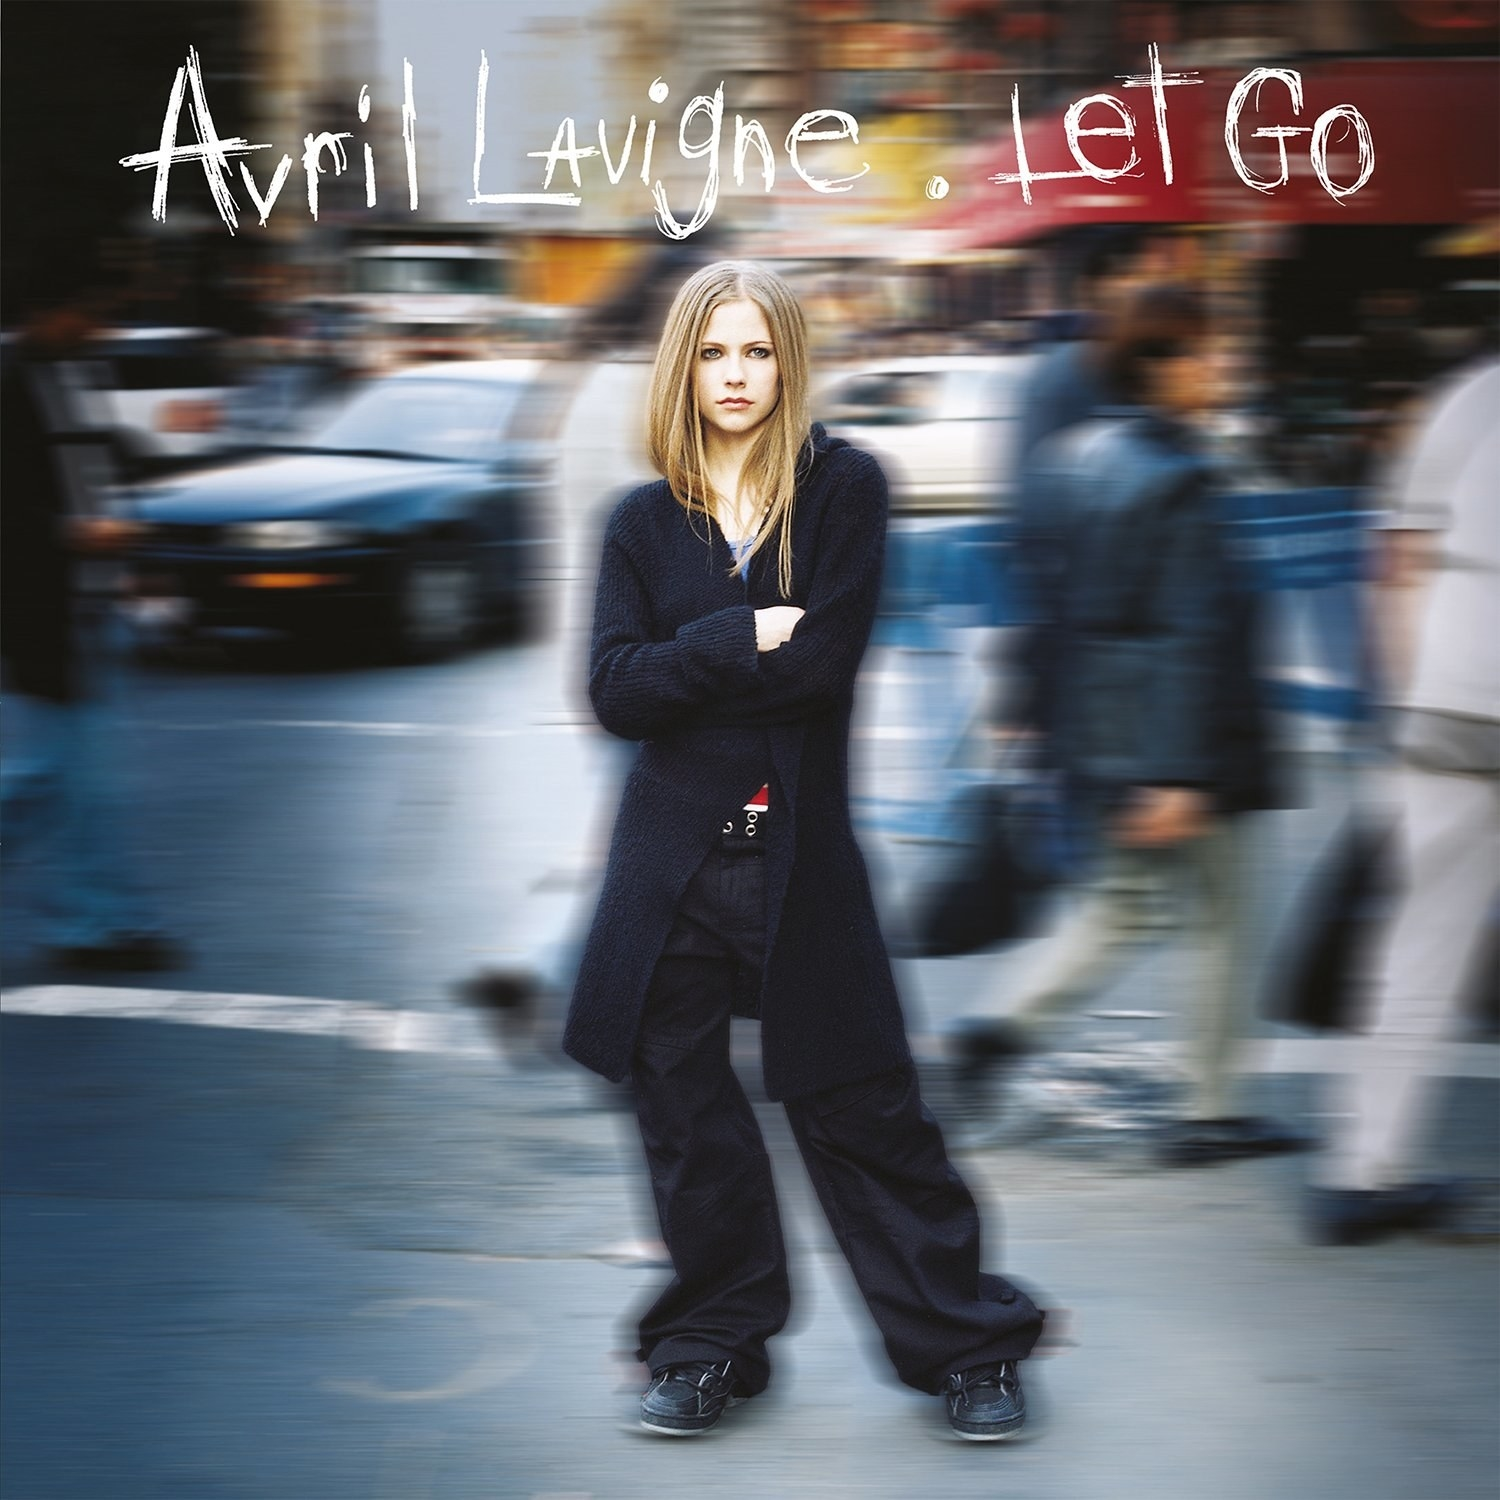 album cover of Let Go with Avril Lavigne standing in all black with her arms crossed as the blurred background depicts a busy street